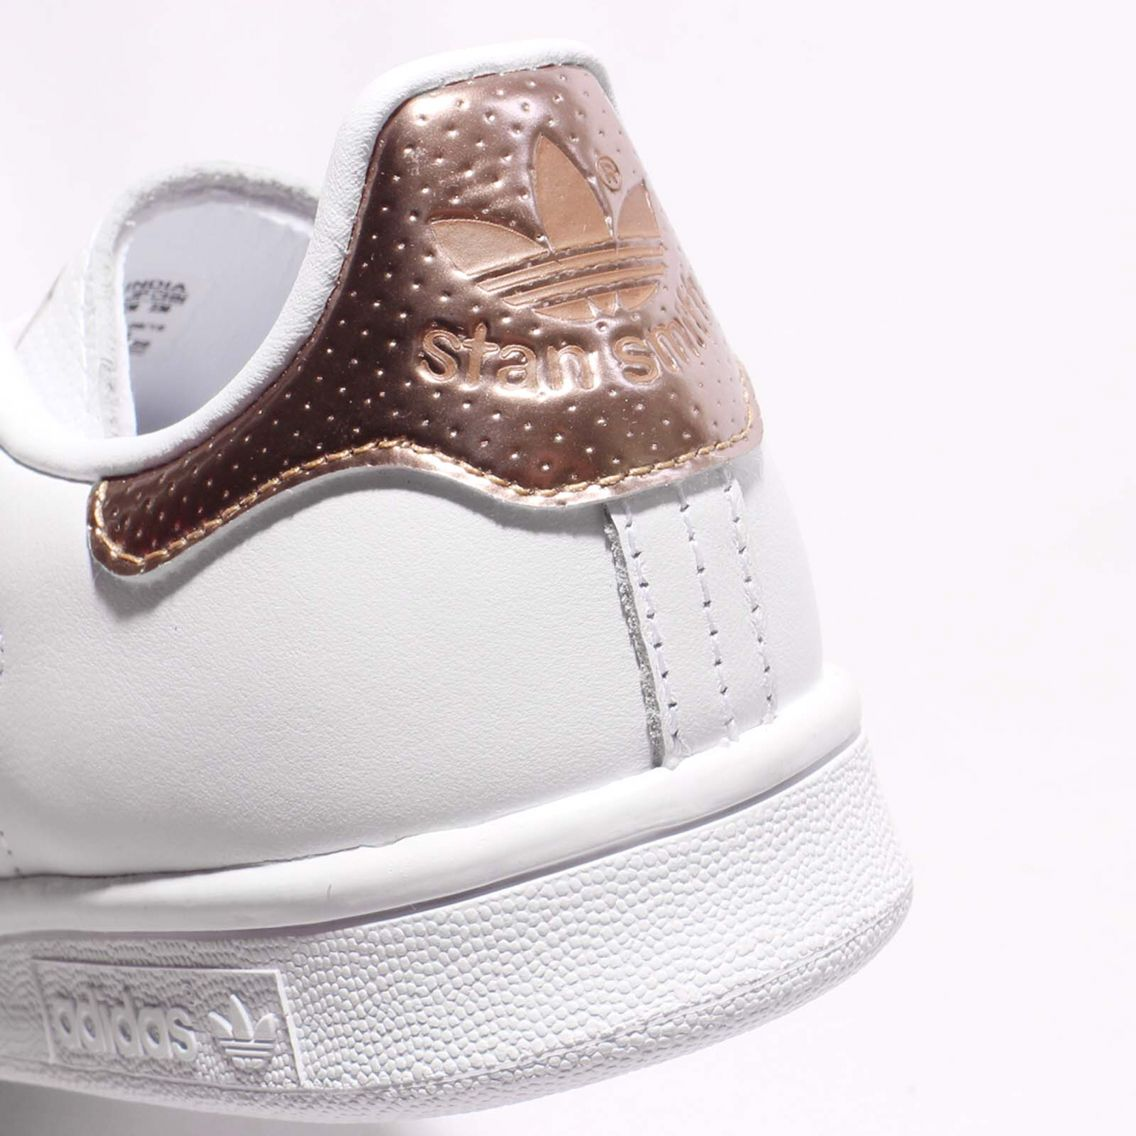 Not only iPhone needs rose gold but also Stan smith needs it. Rose gold on  Stan smith looks fantastic.